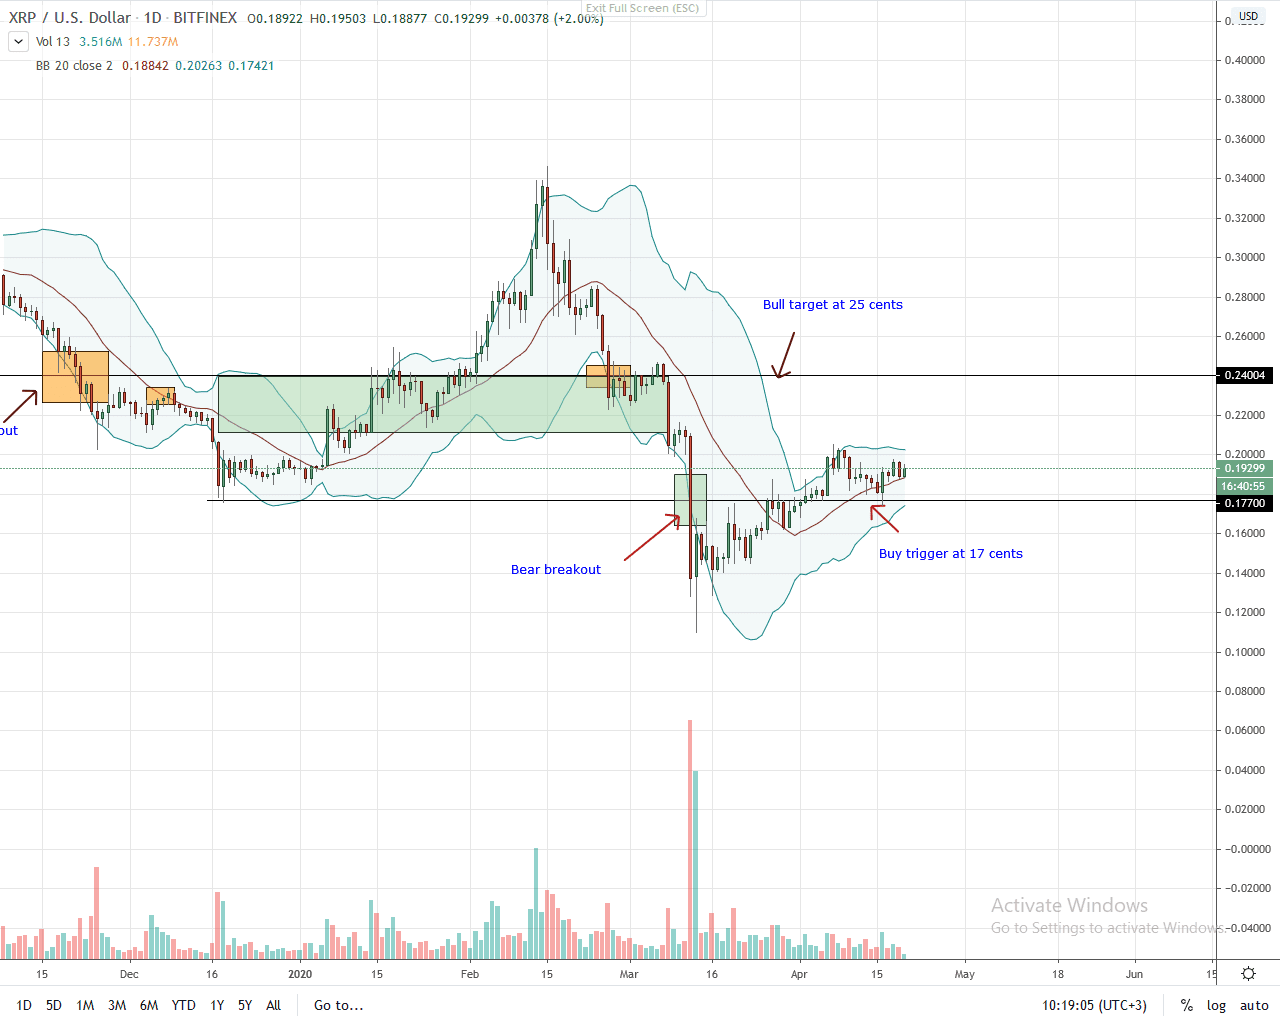 Ripple Daily Chart for Apr 20